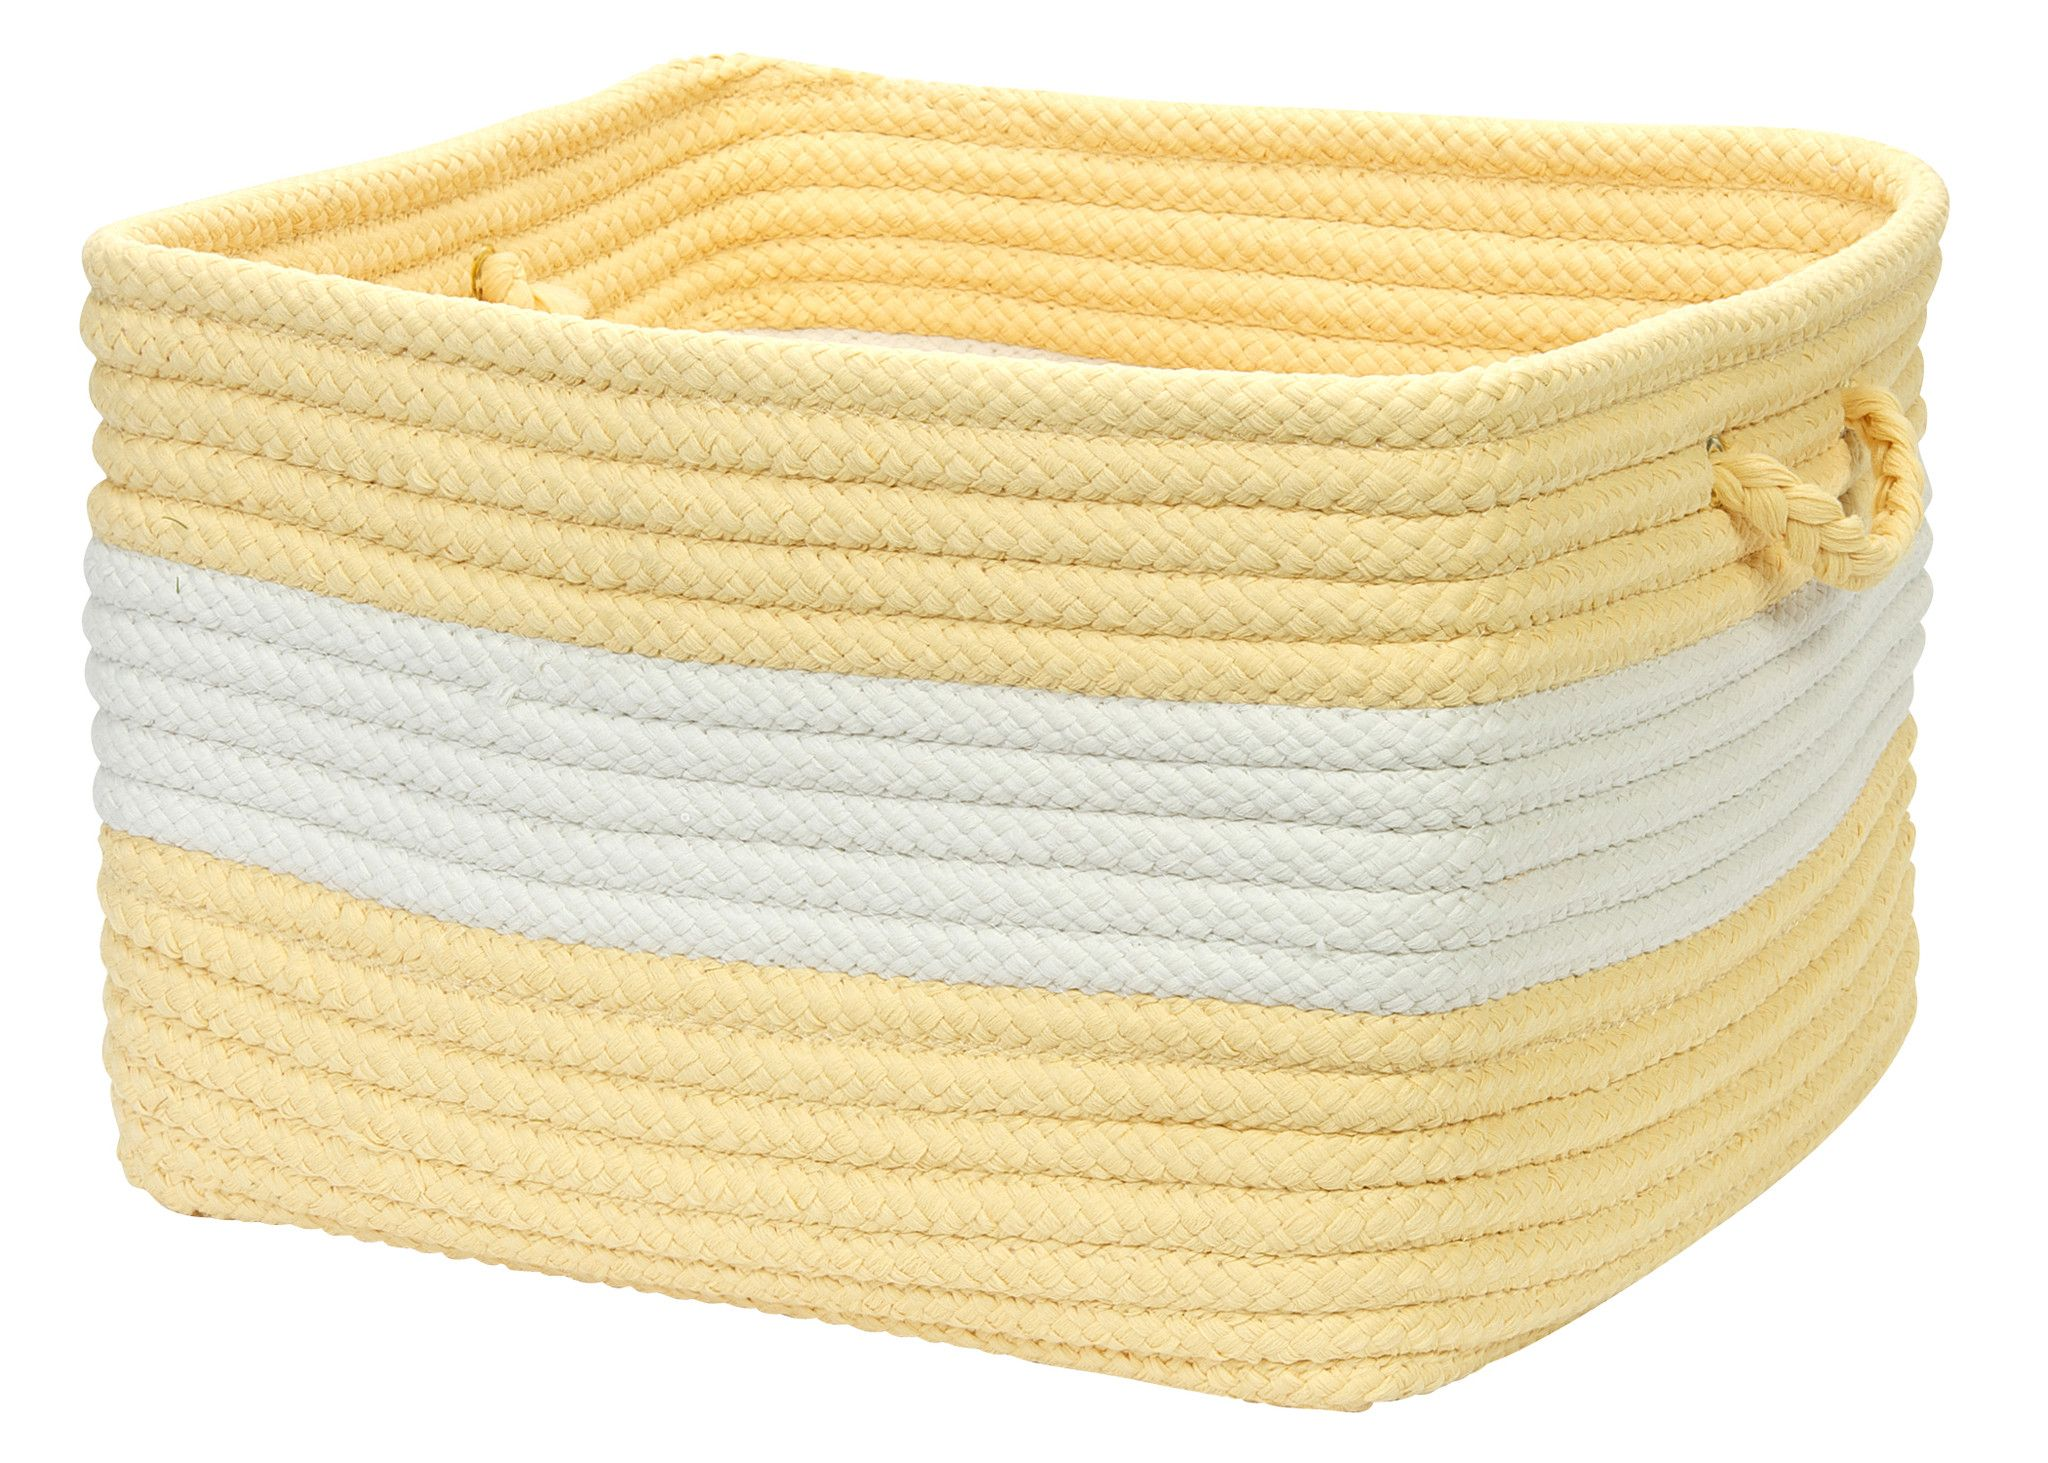 Rope Walk Indoor Outdoor Braided Square Utility Storage Basket, CB90 Yellow